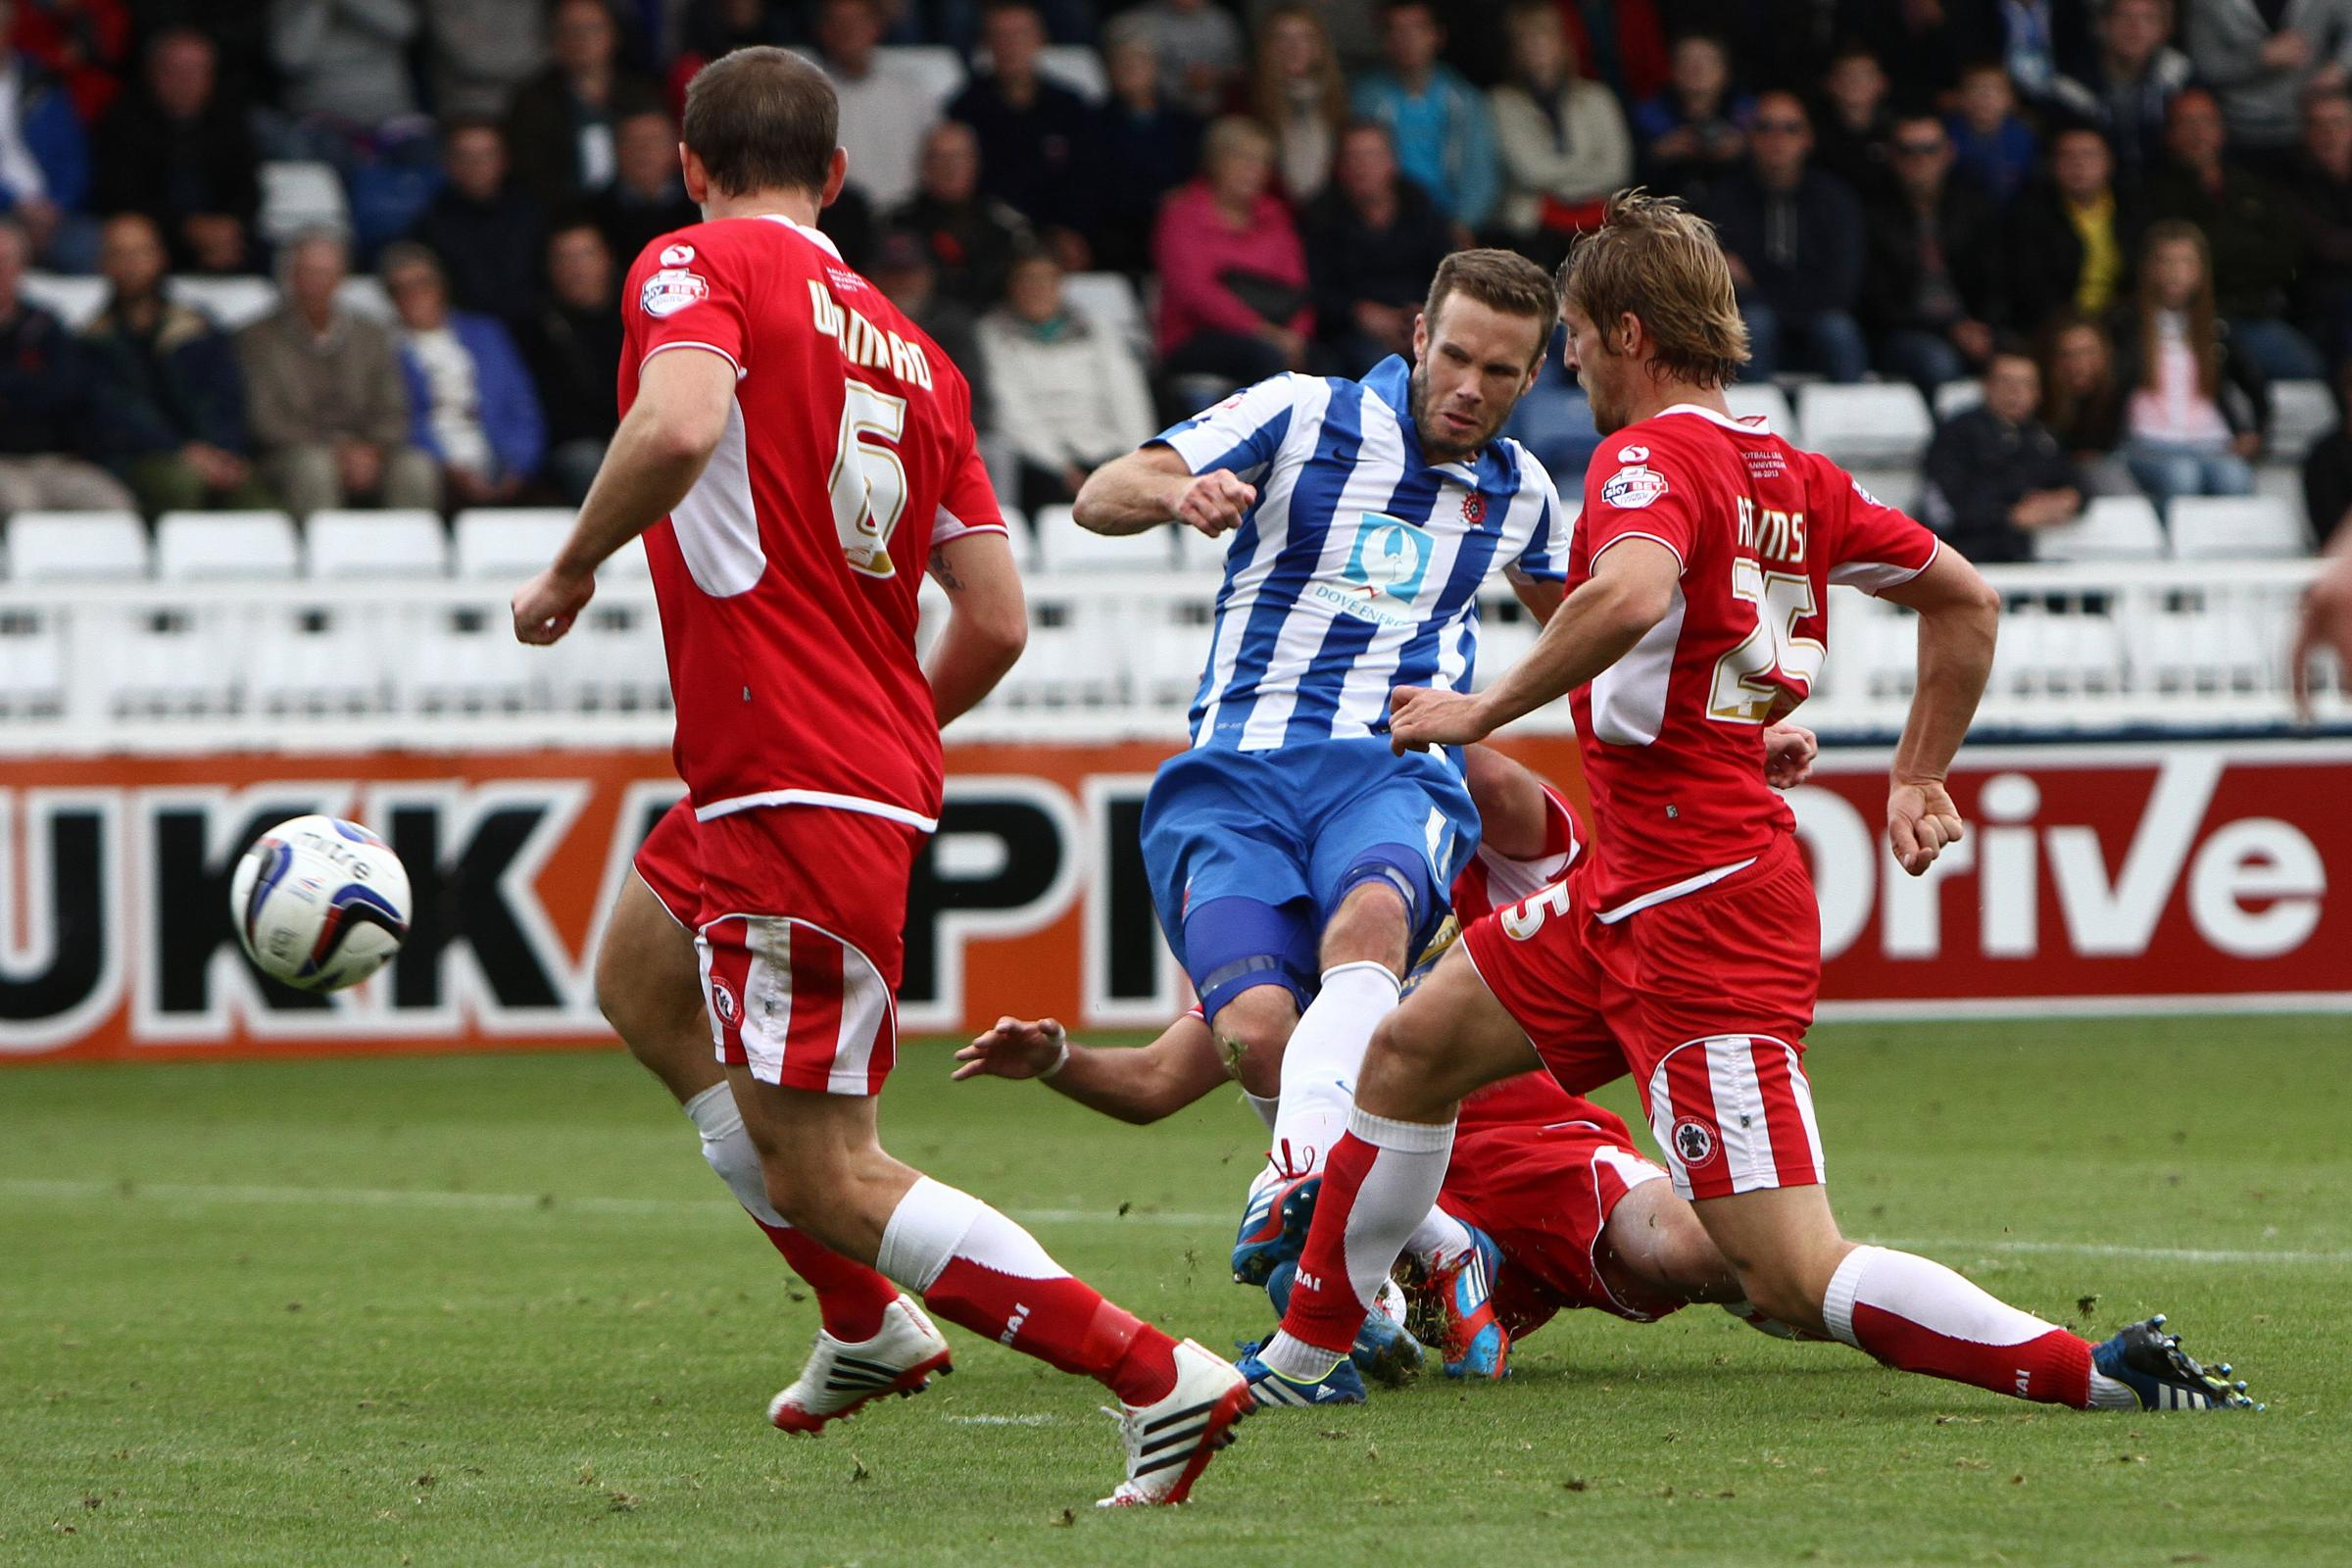 ON TARGET: Andy Monkhouse scores Pools' second goal against Accrington Stanley on Saturday